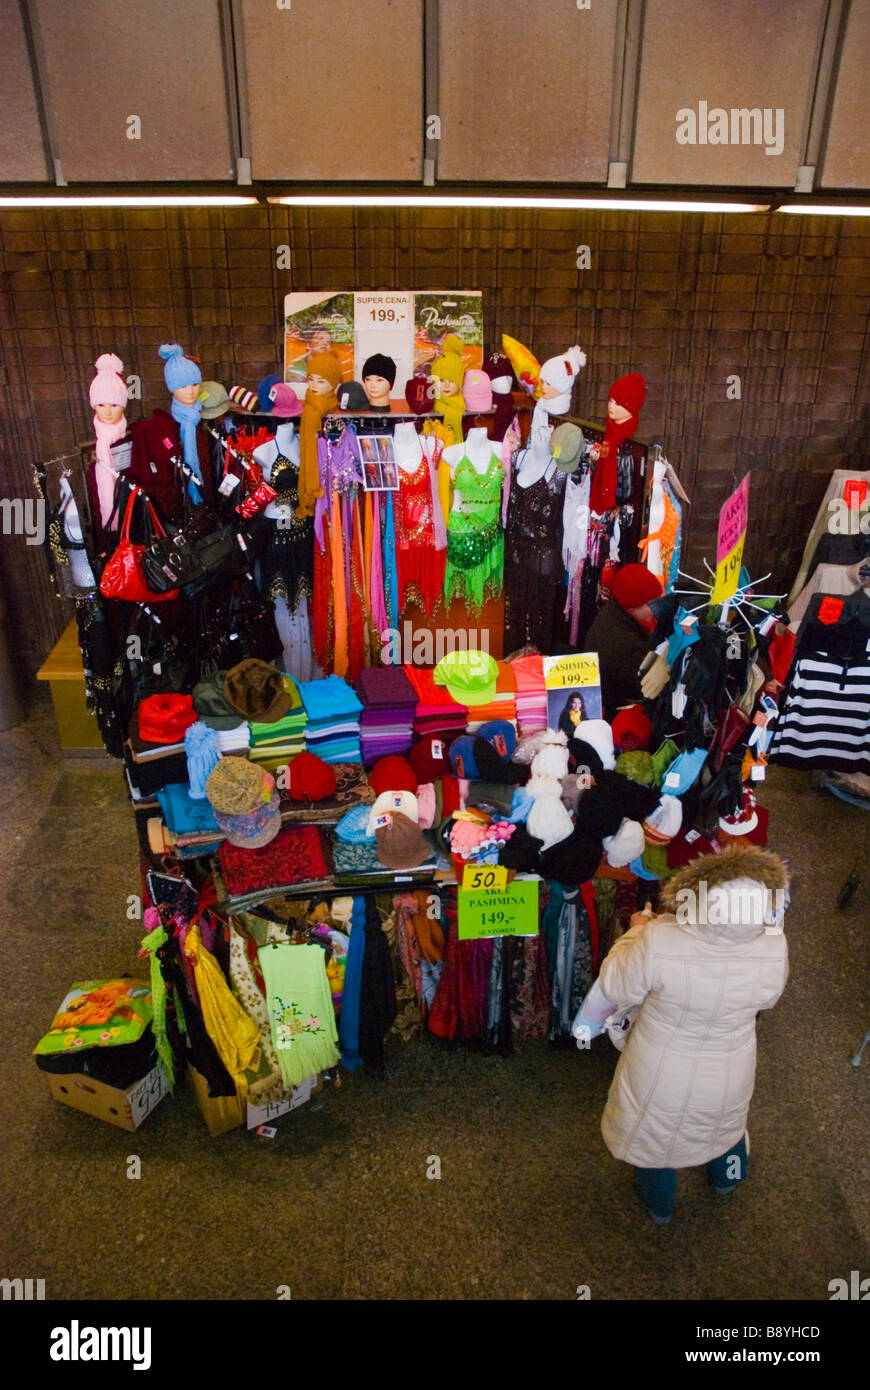 Stall selling pashmina and other clothes and garments at Vltavska metro station in Prague Czech Republic Europe - Stock Image